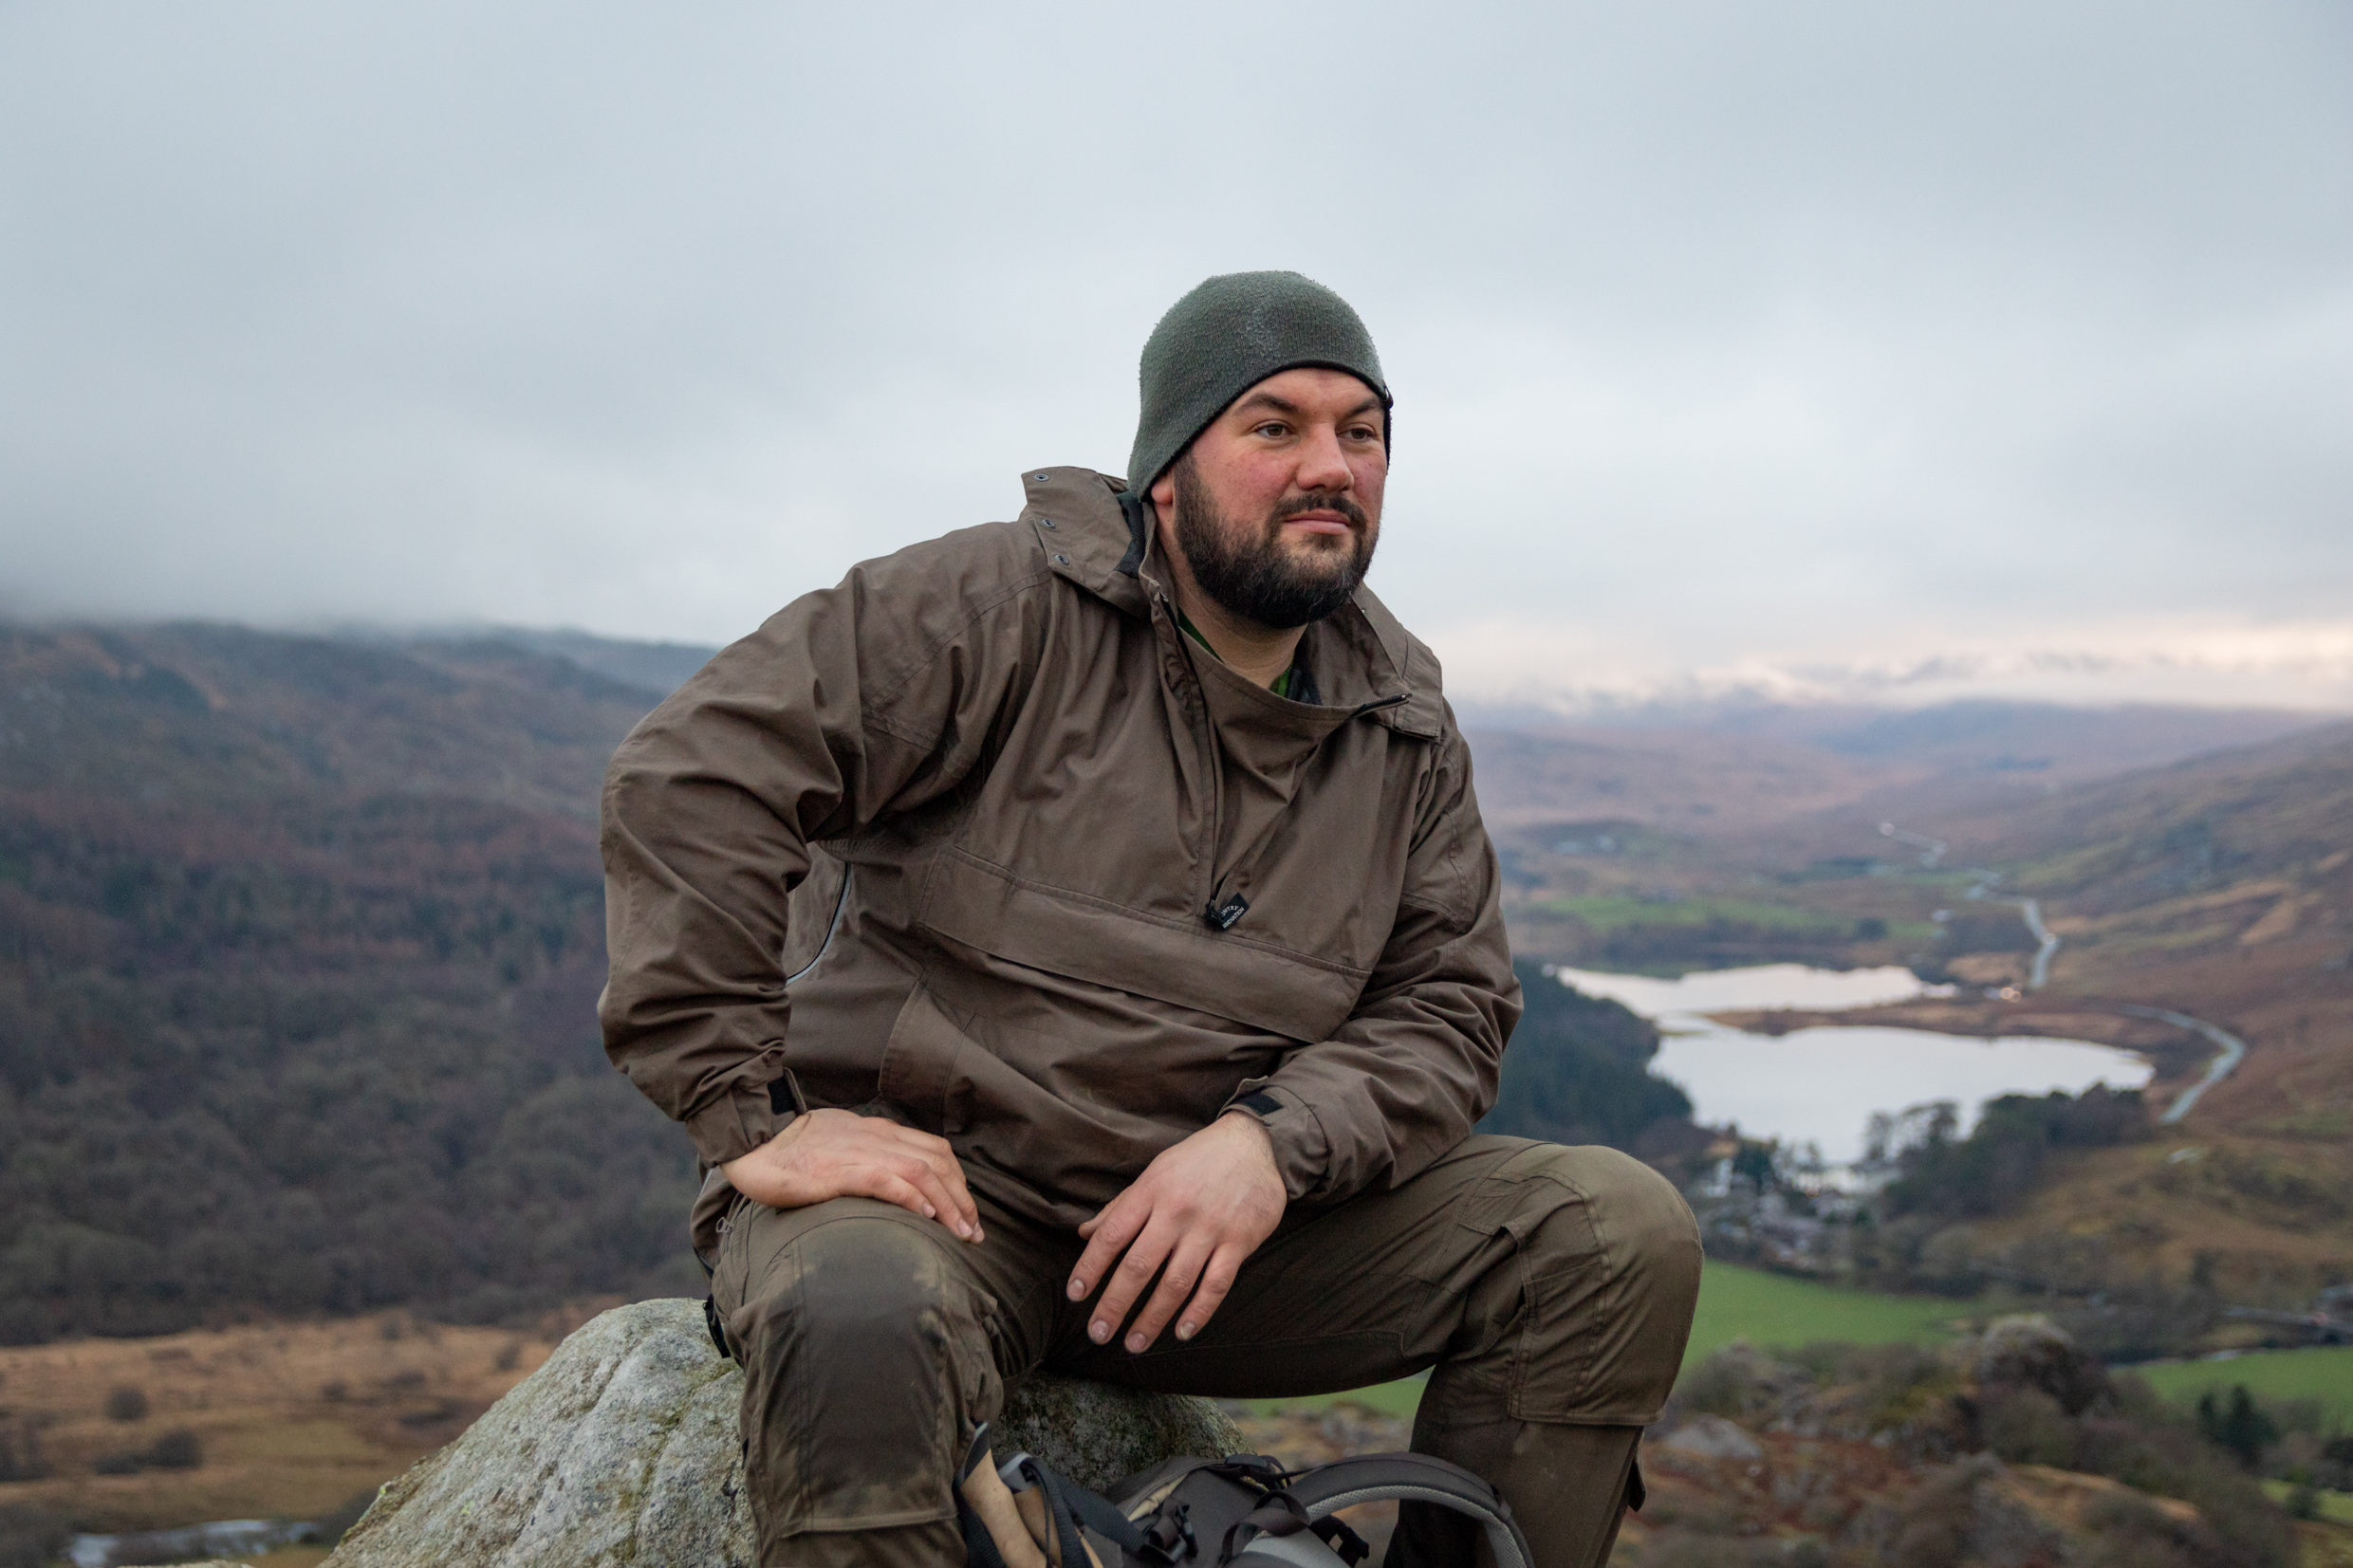 Wood lark Smock review